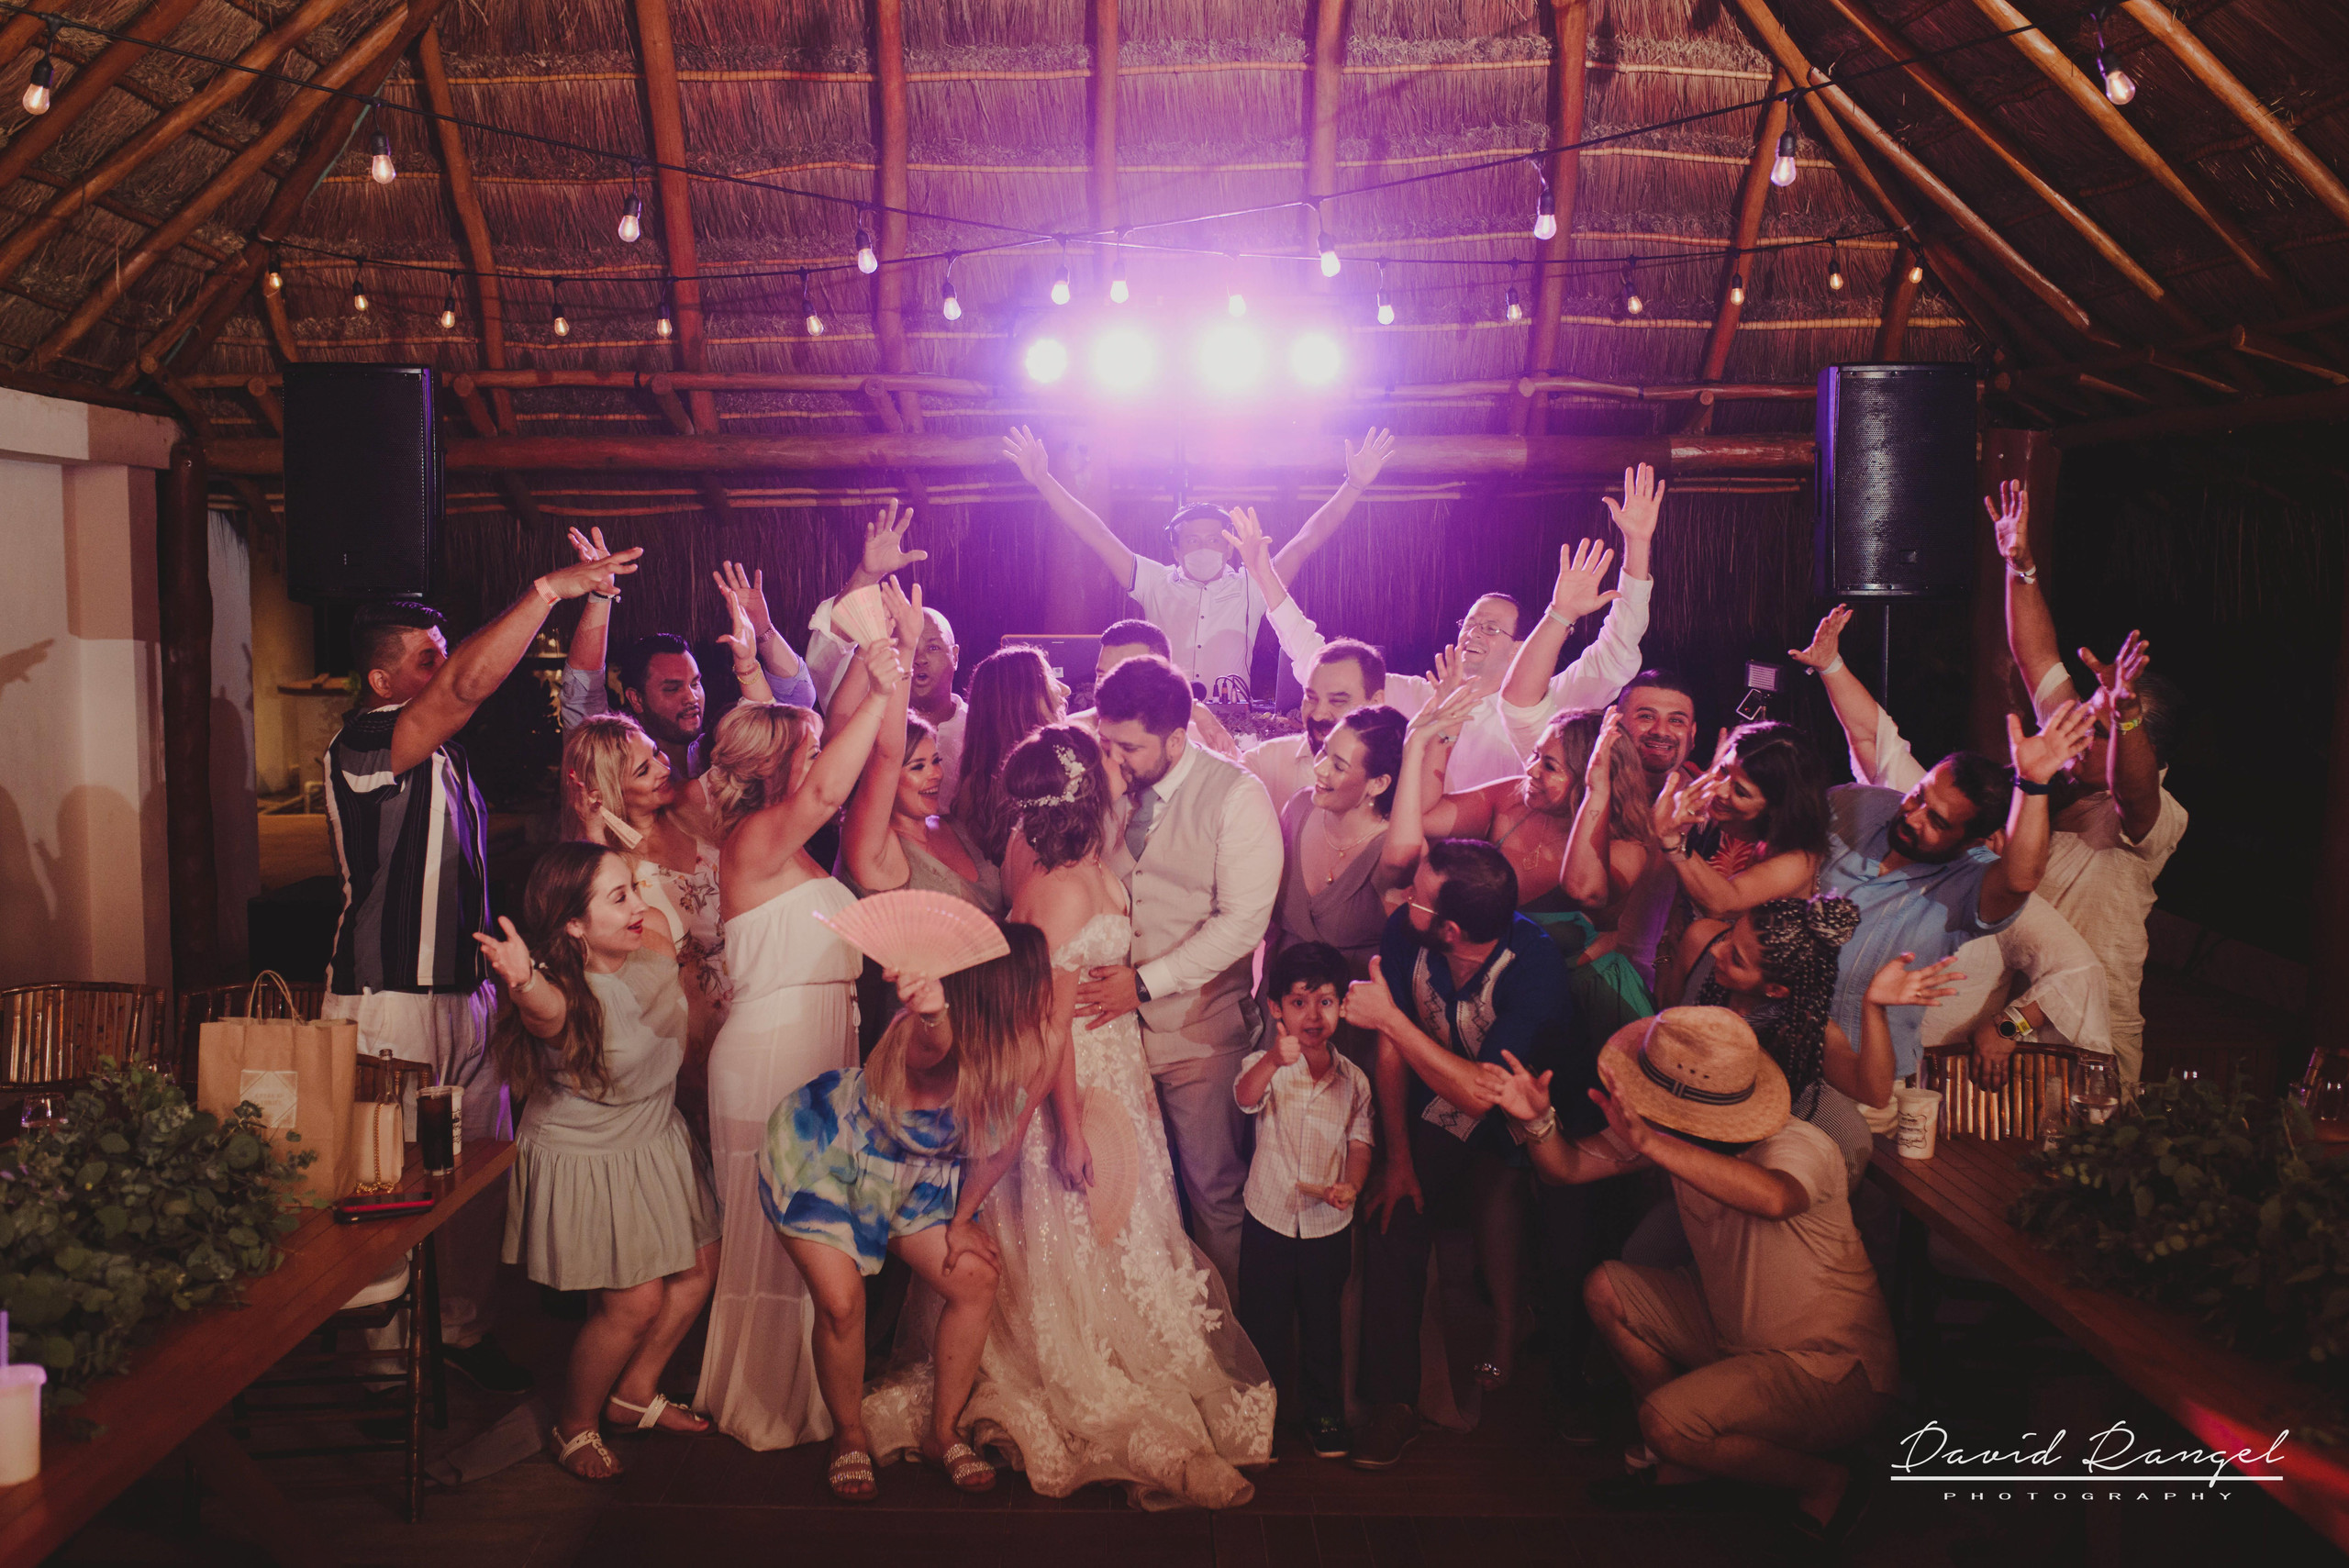 bride+groom+dance+reception+guest+celebration+happiness+photo+dance+floor+friends+family